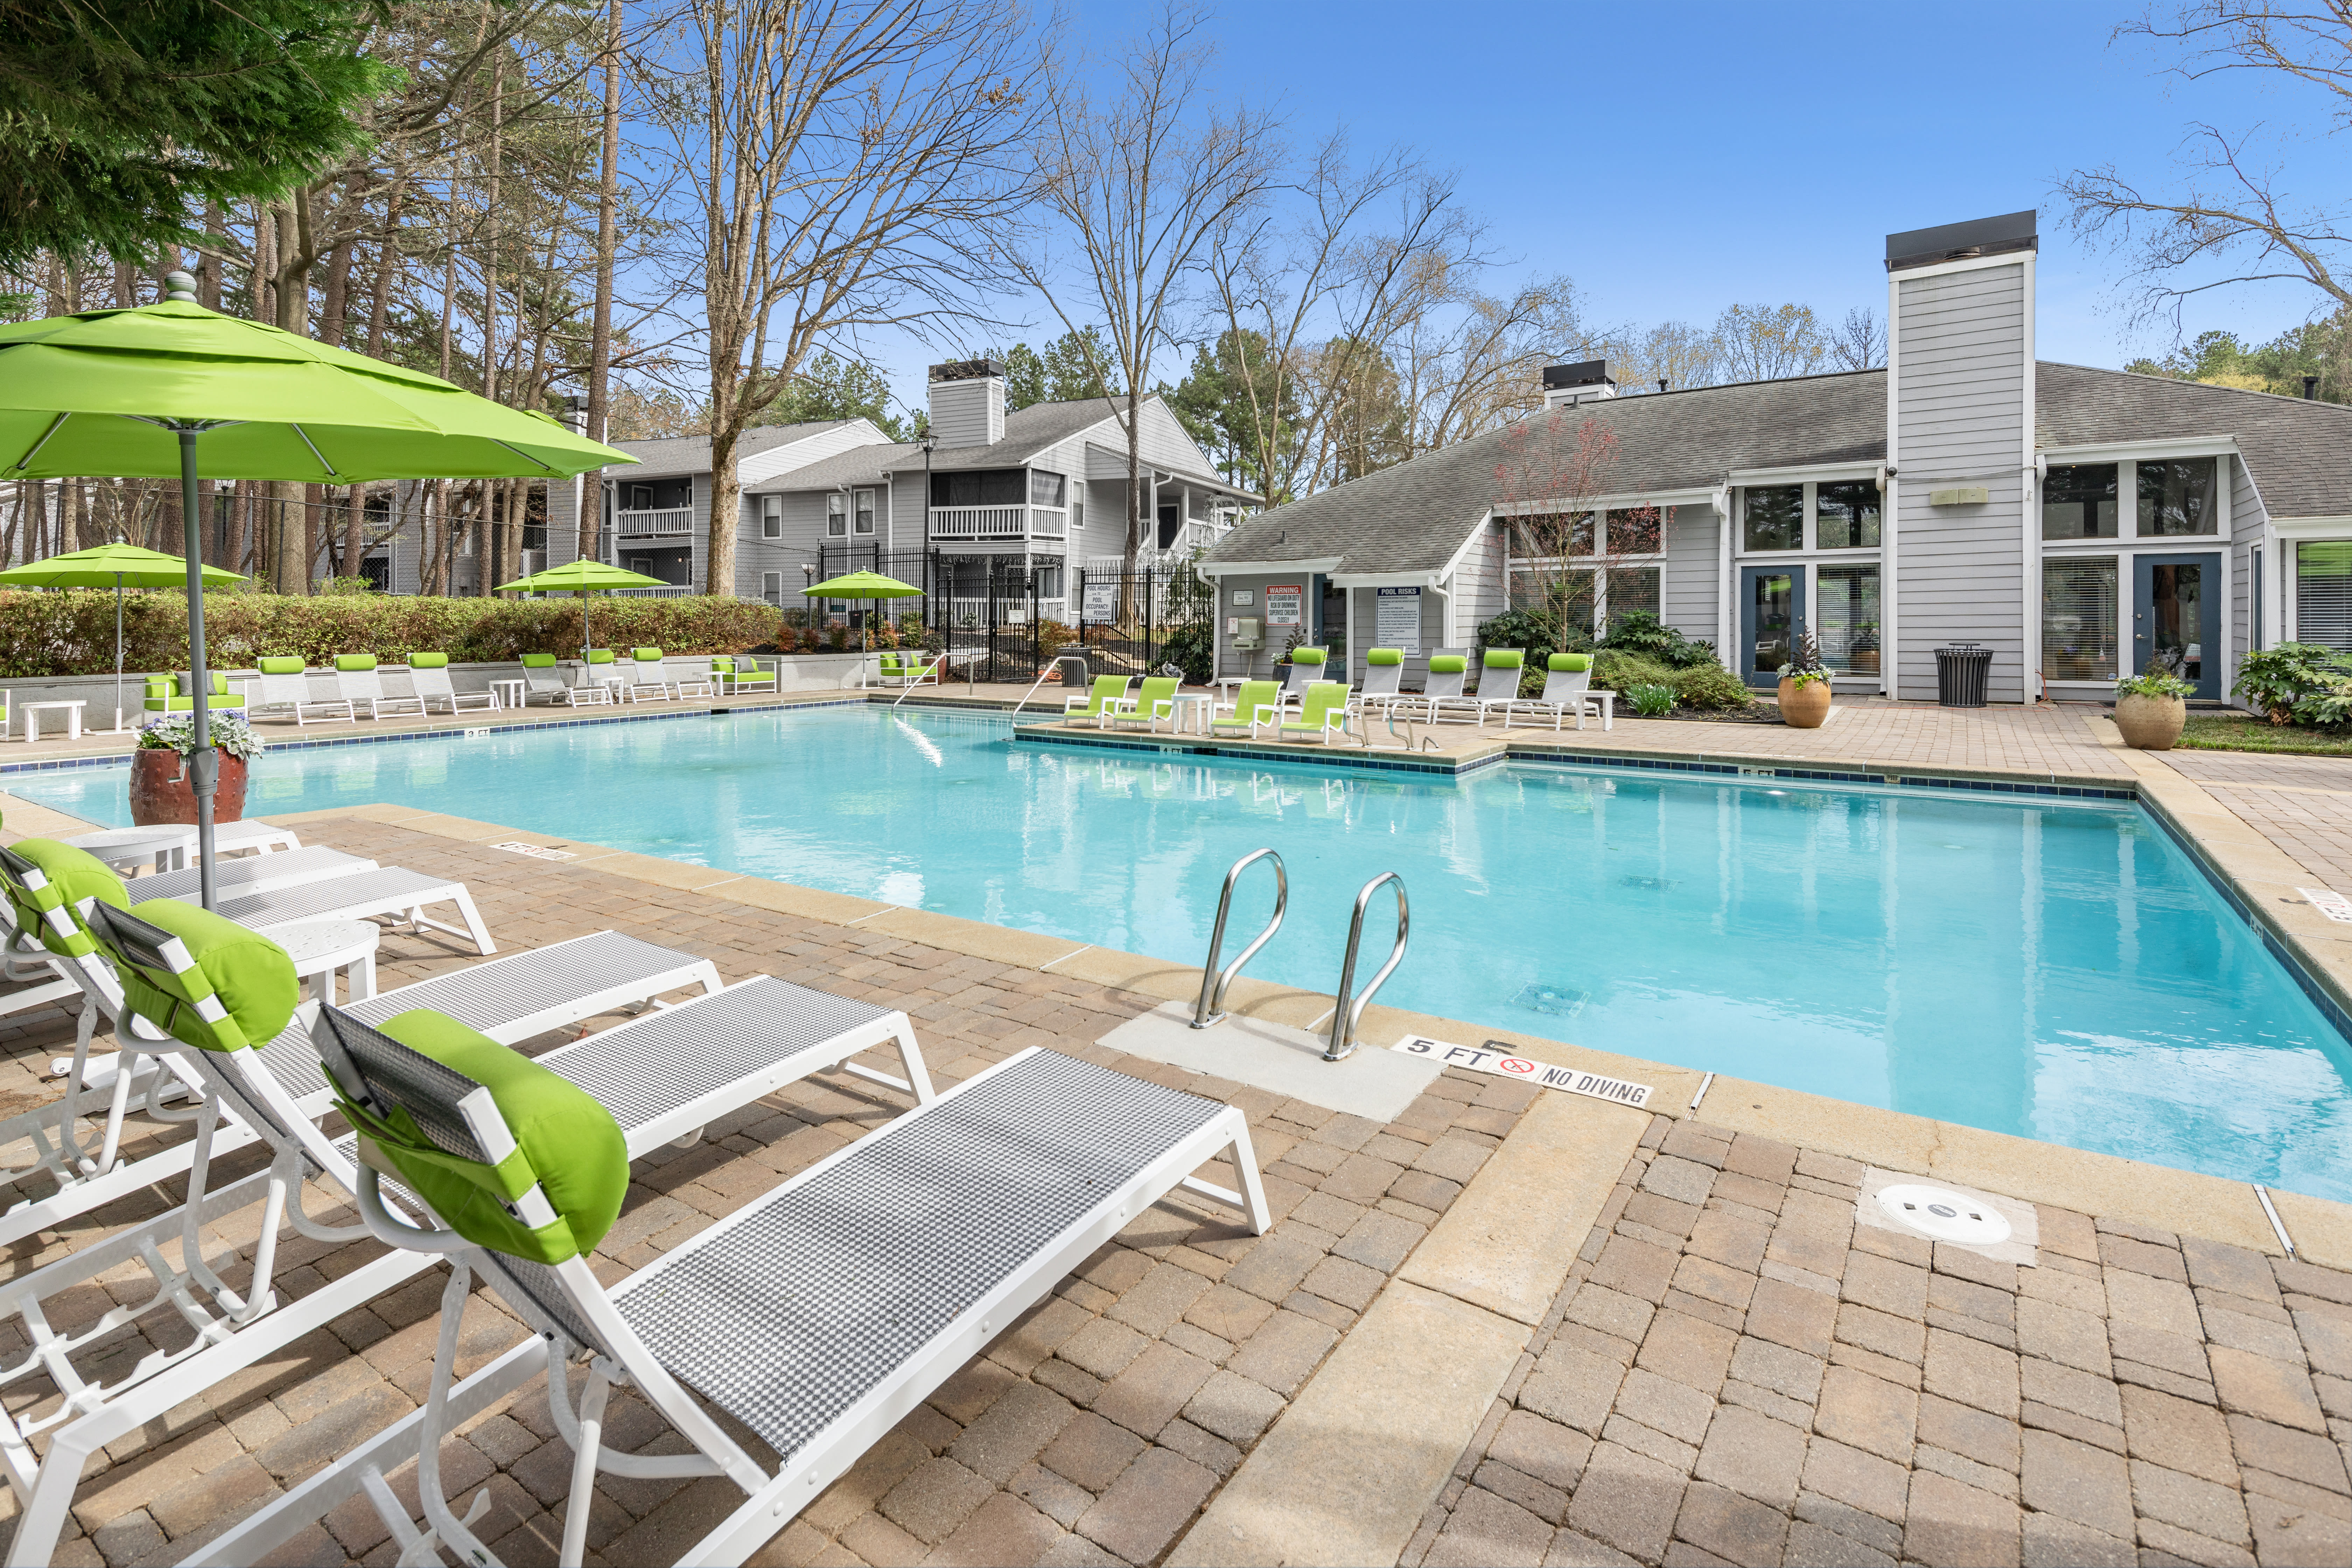 Resort-style swimming pool surrounded by chaise lounge chairs and mature trees at The Franklin in Marietta, Georgia